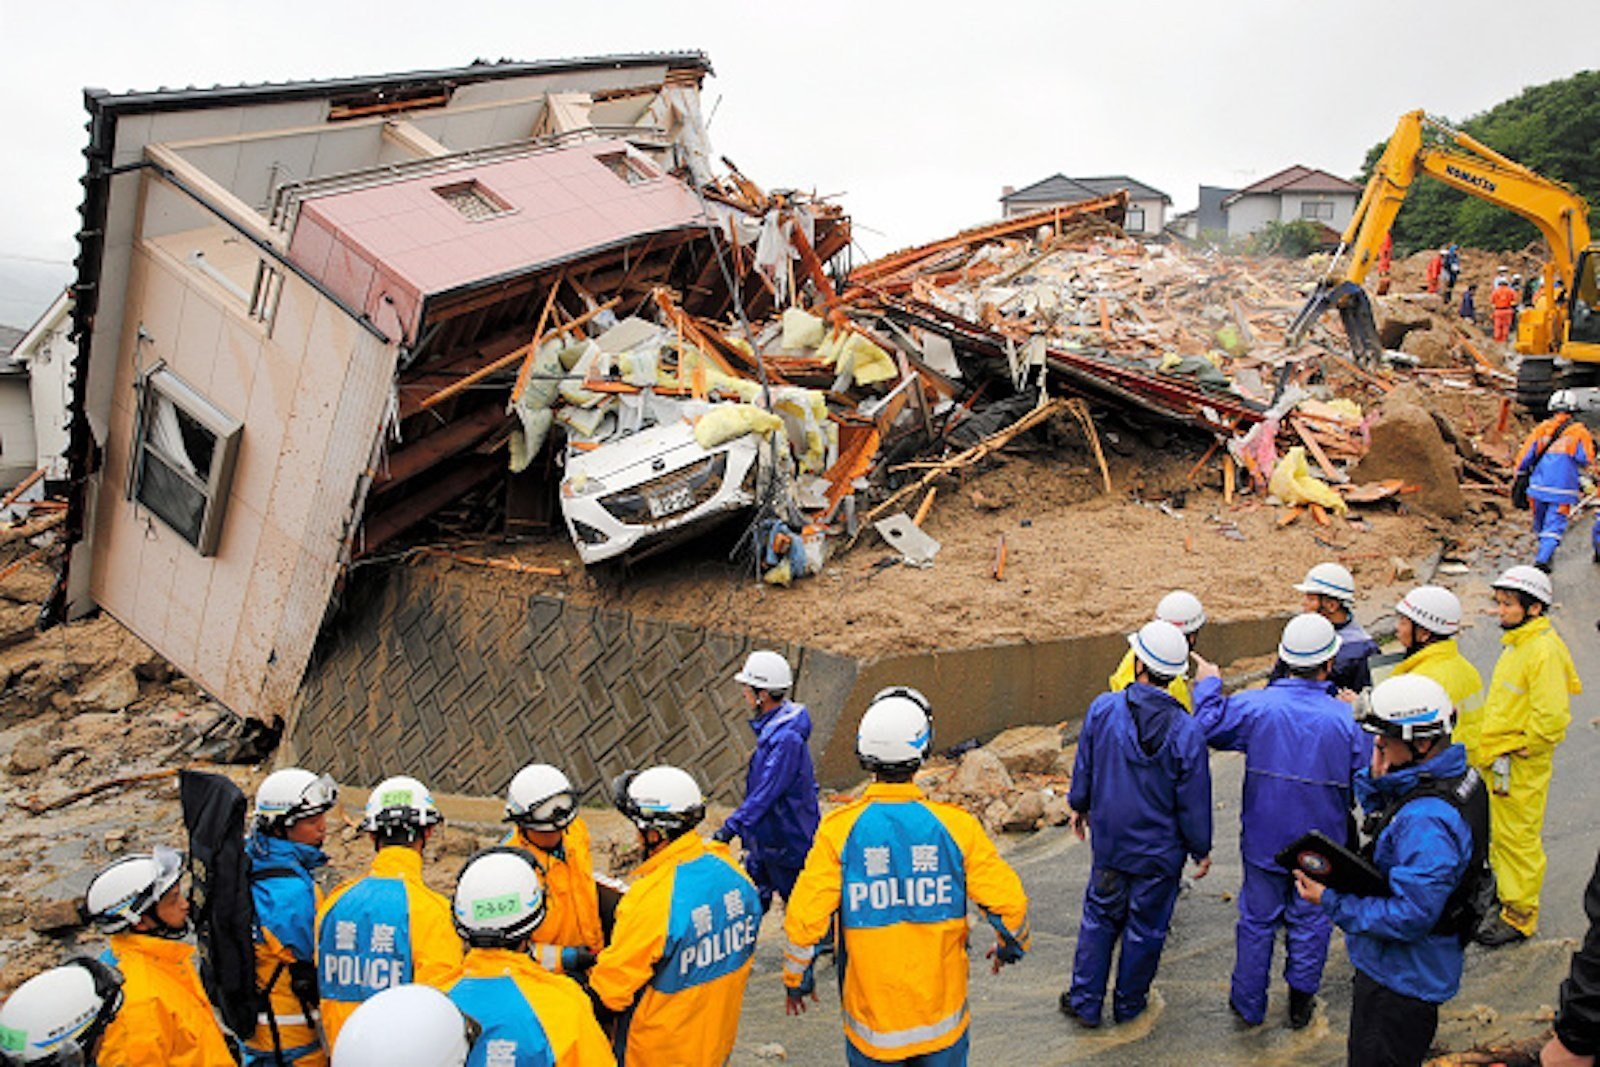 Rescue operations continue at a collapsed house on July 8, 2018 in Kumano, Hiroshima, Japan.  CREDIT: The Asahi Shimbun via Getty Images